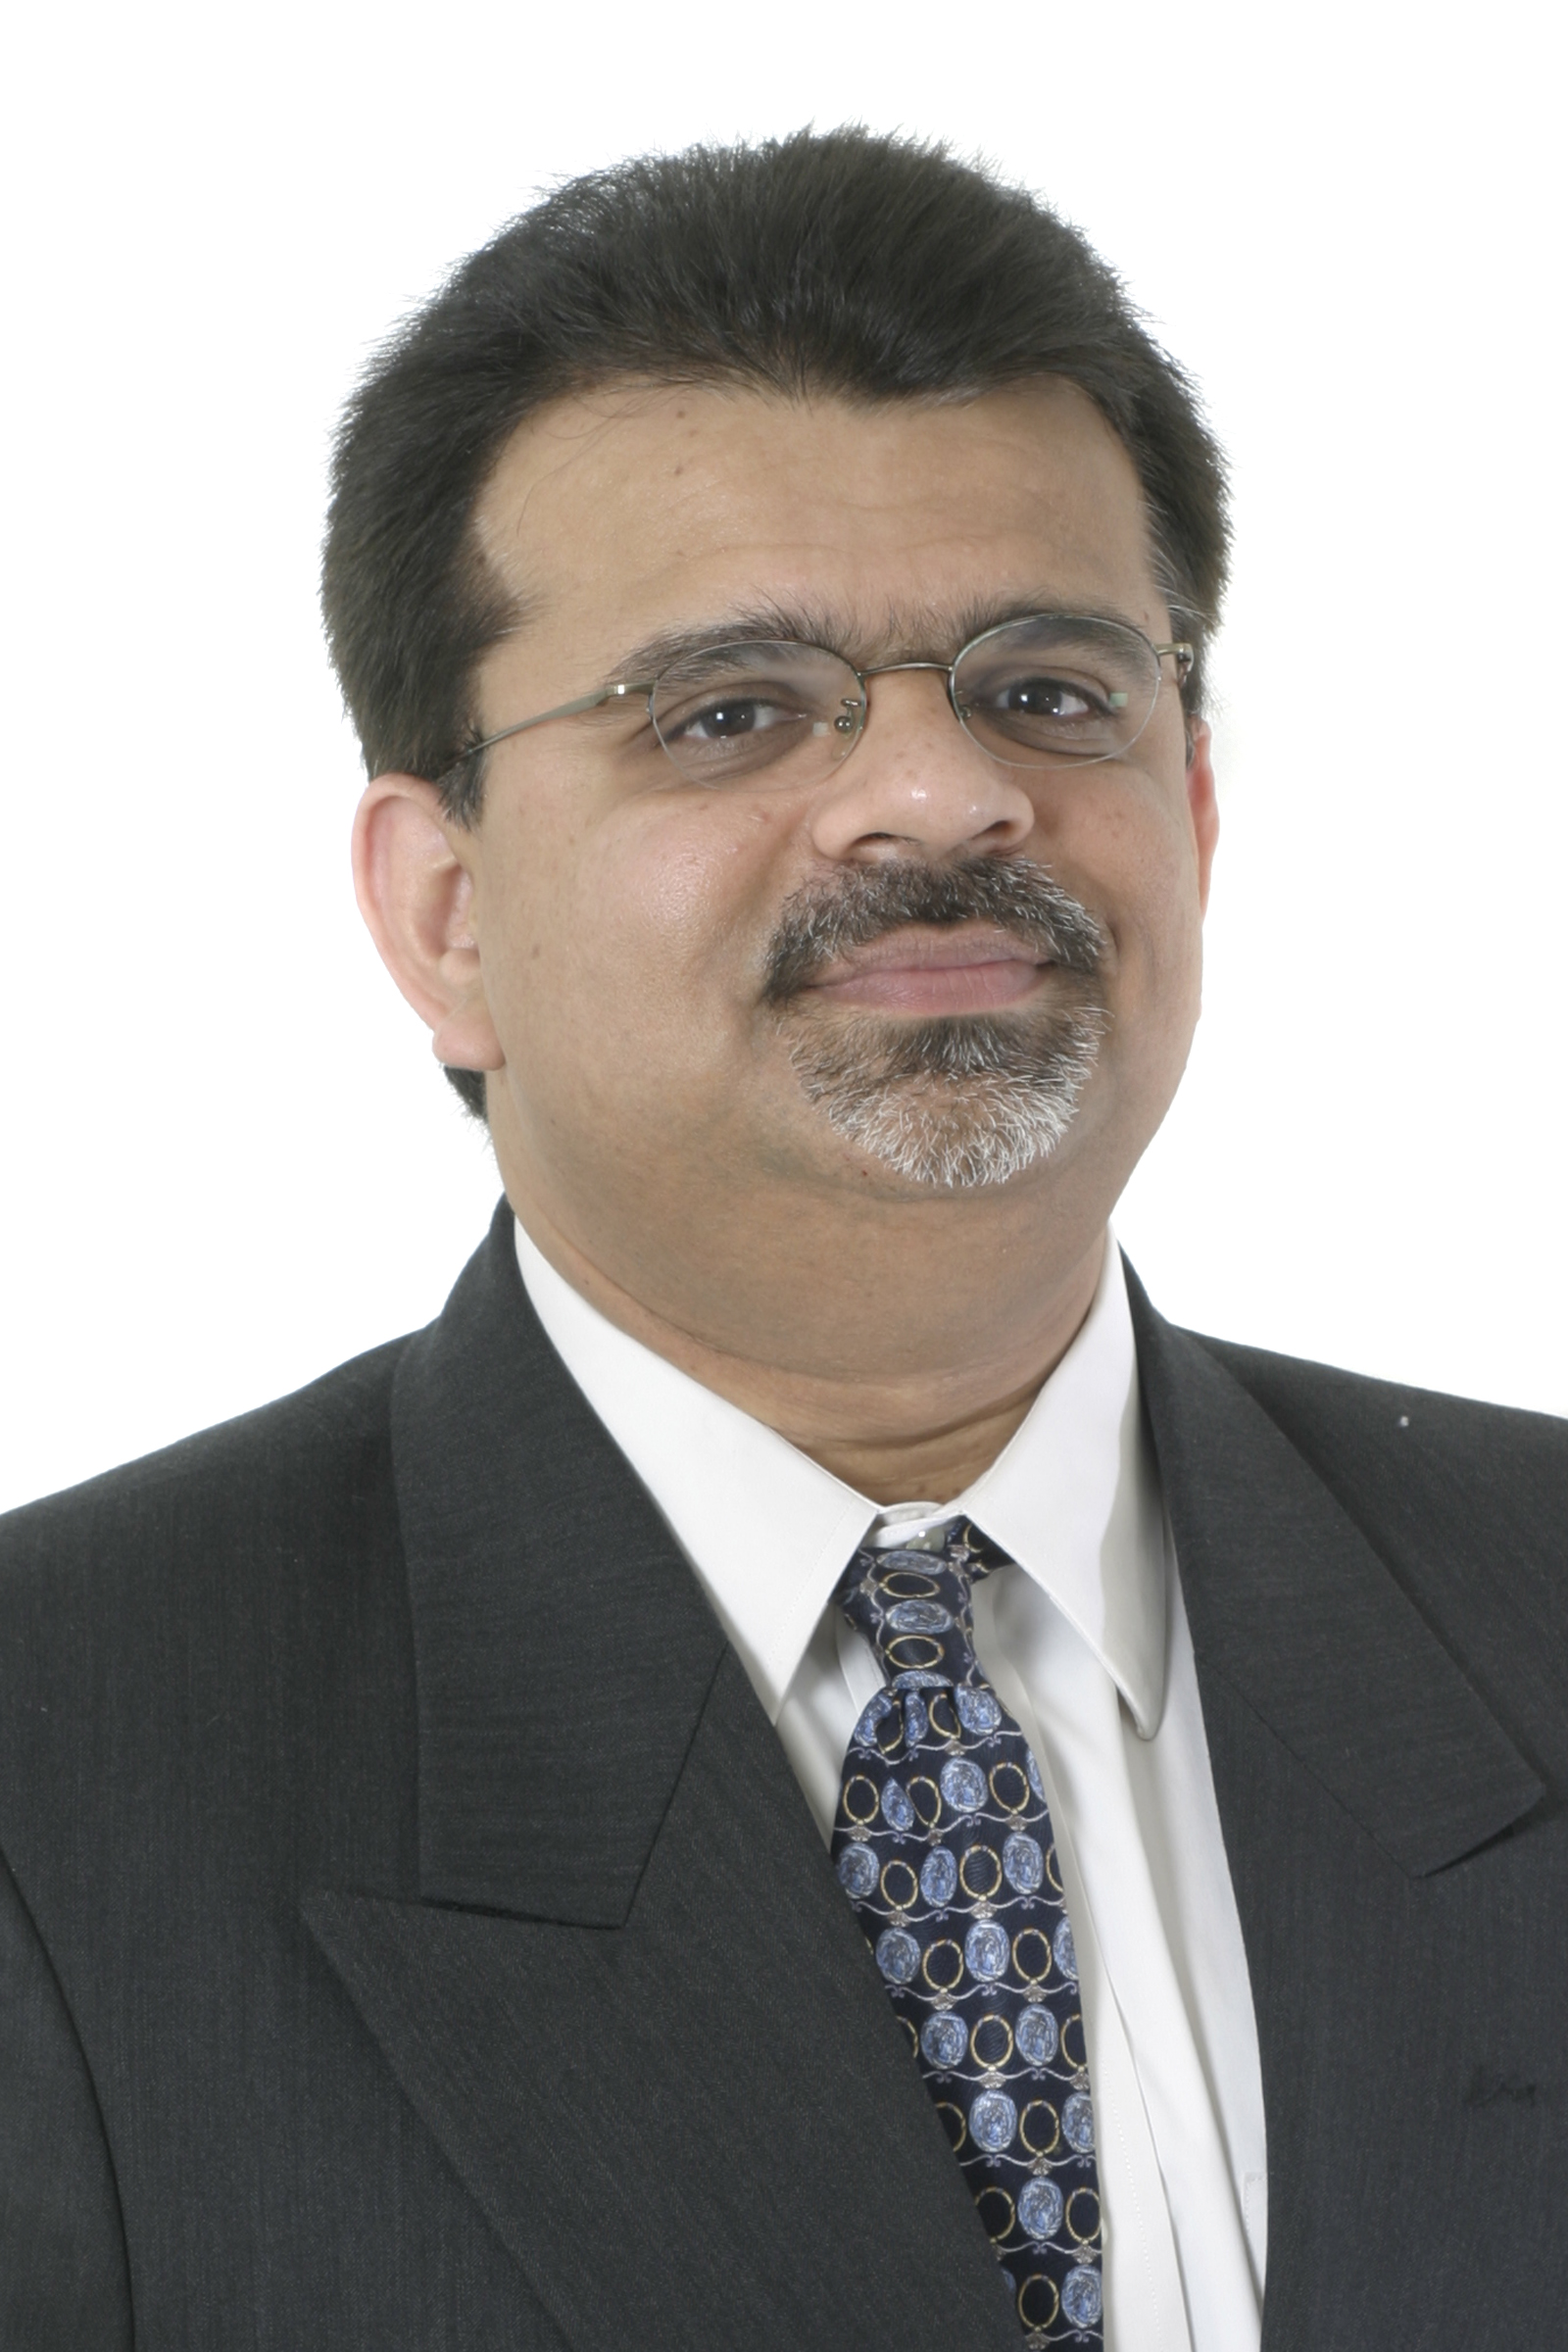 ParthDesai Pelican - 2020 payments innovation: Industry experts say new tech is key